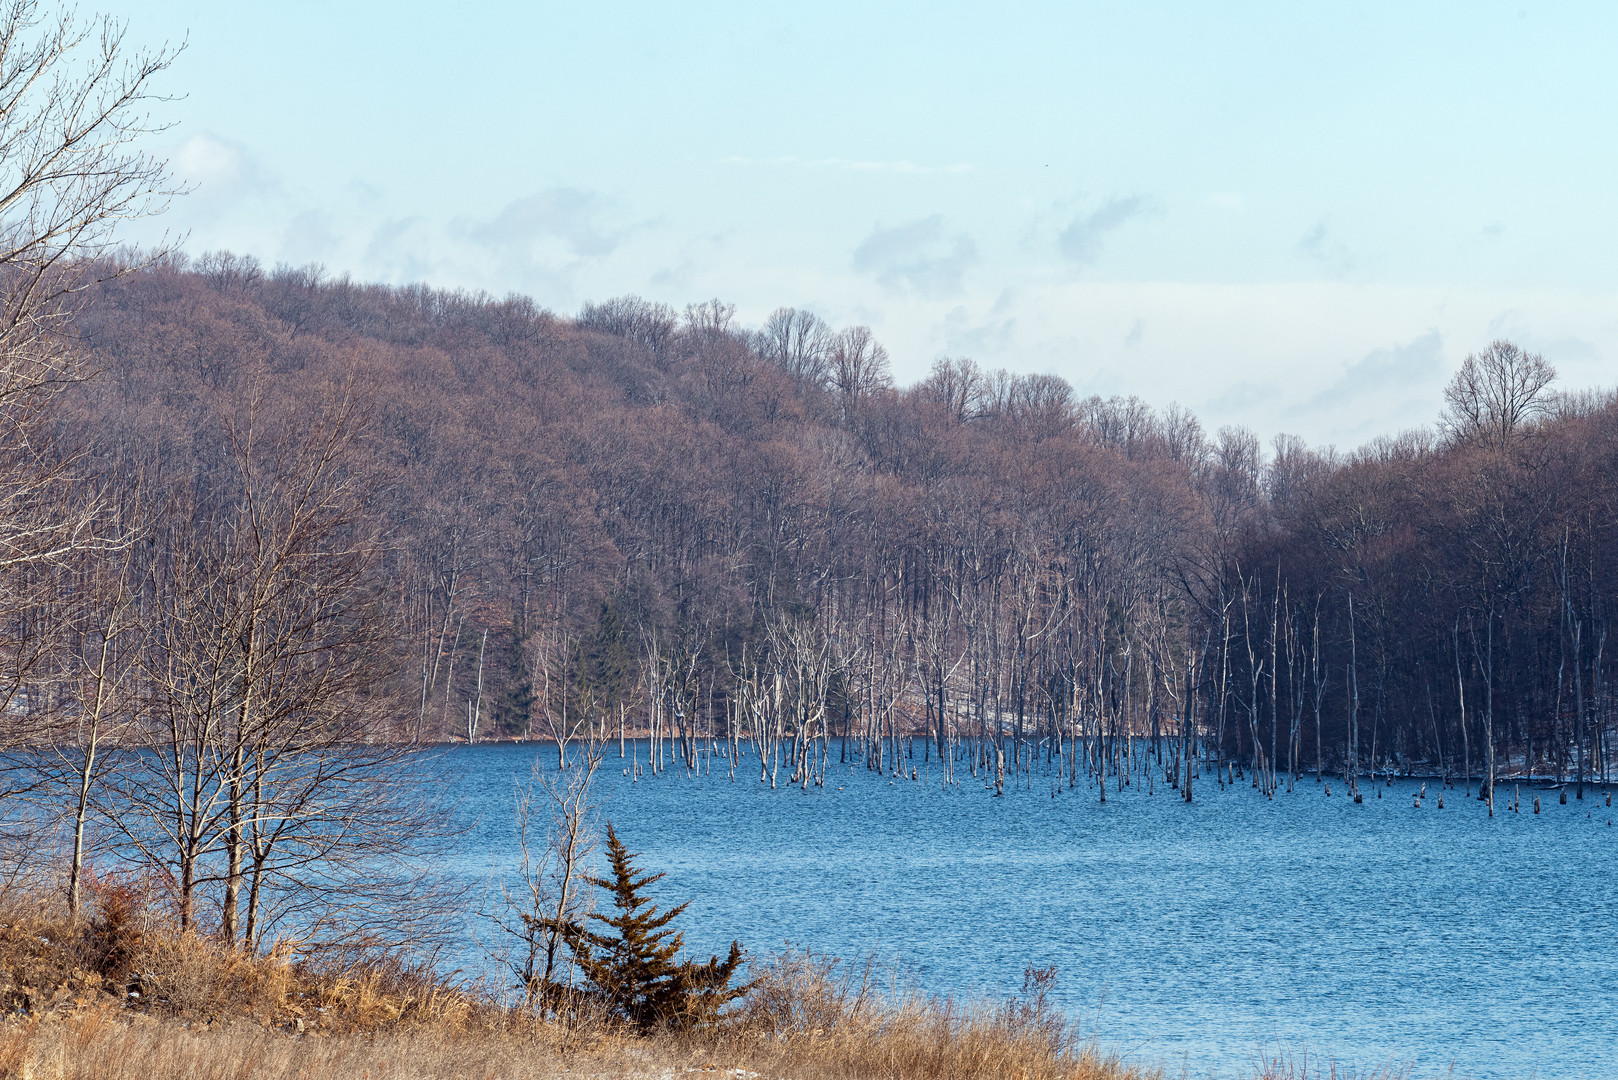 Submerged Trees at Merrill Creek Reservoir, New Jersey